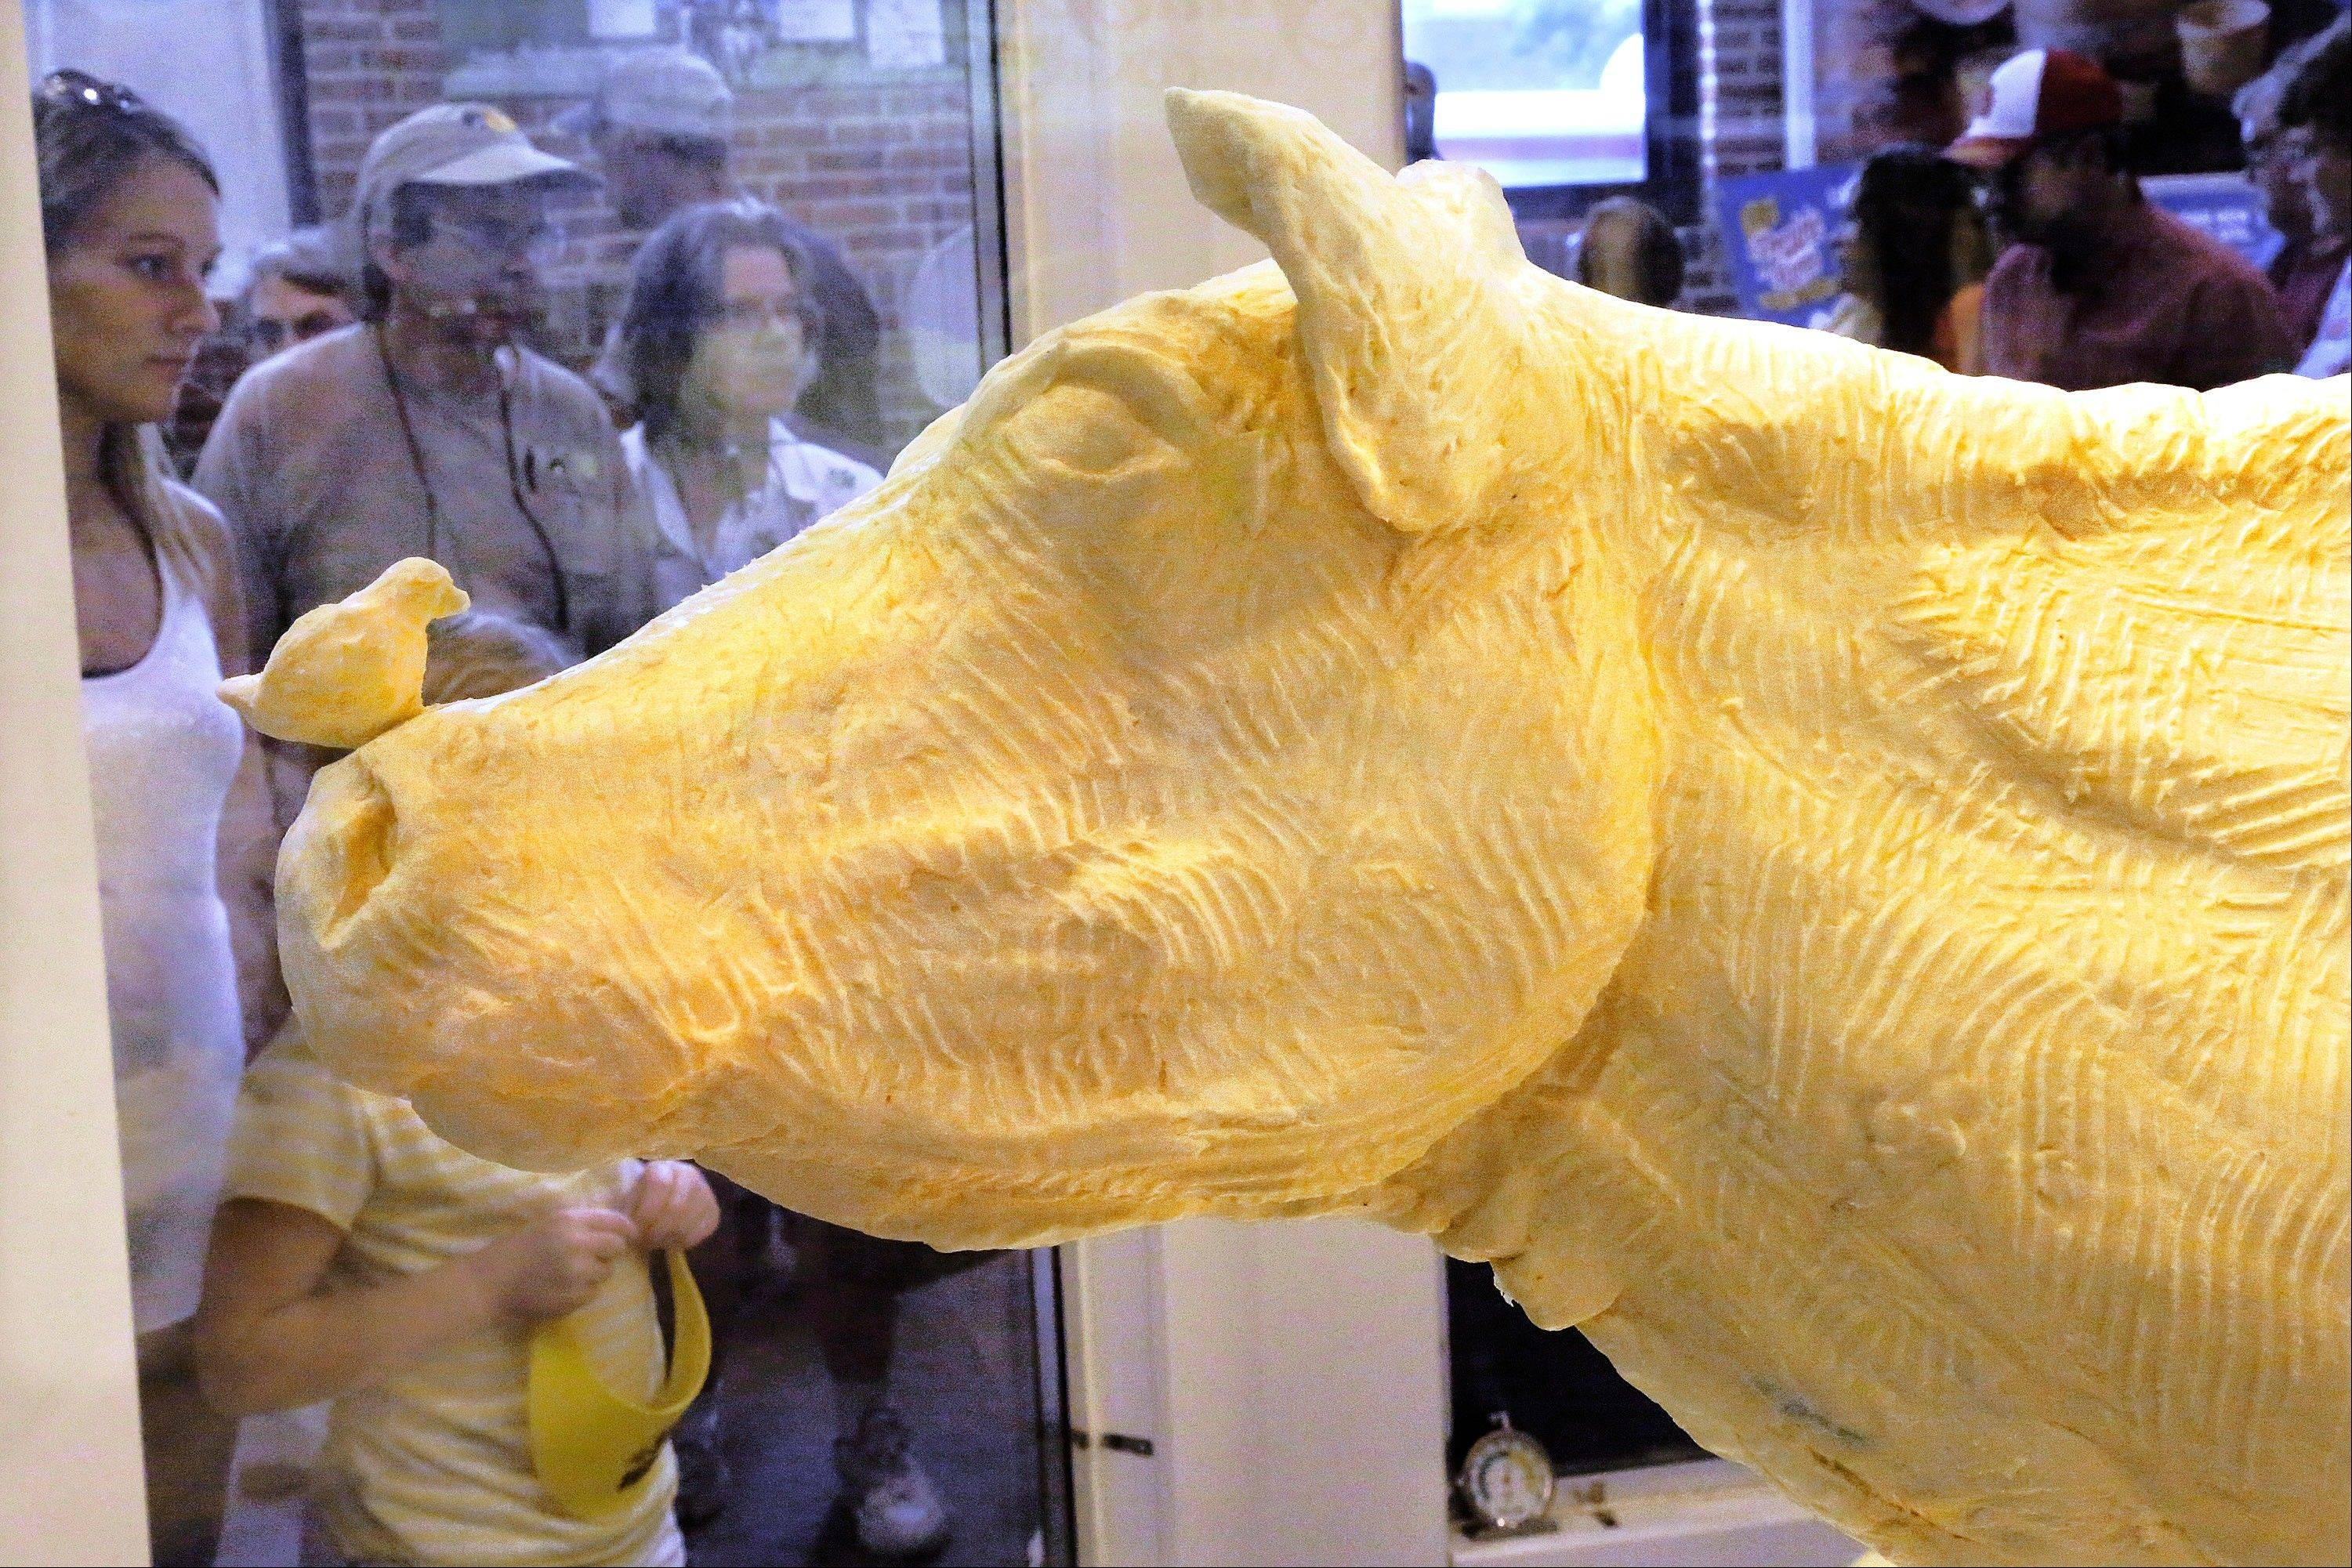 Visitors to the Dairy Barn at the Illinois State Fair enjoy the Butter Cow exhibit Tuesday in Springfield.